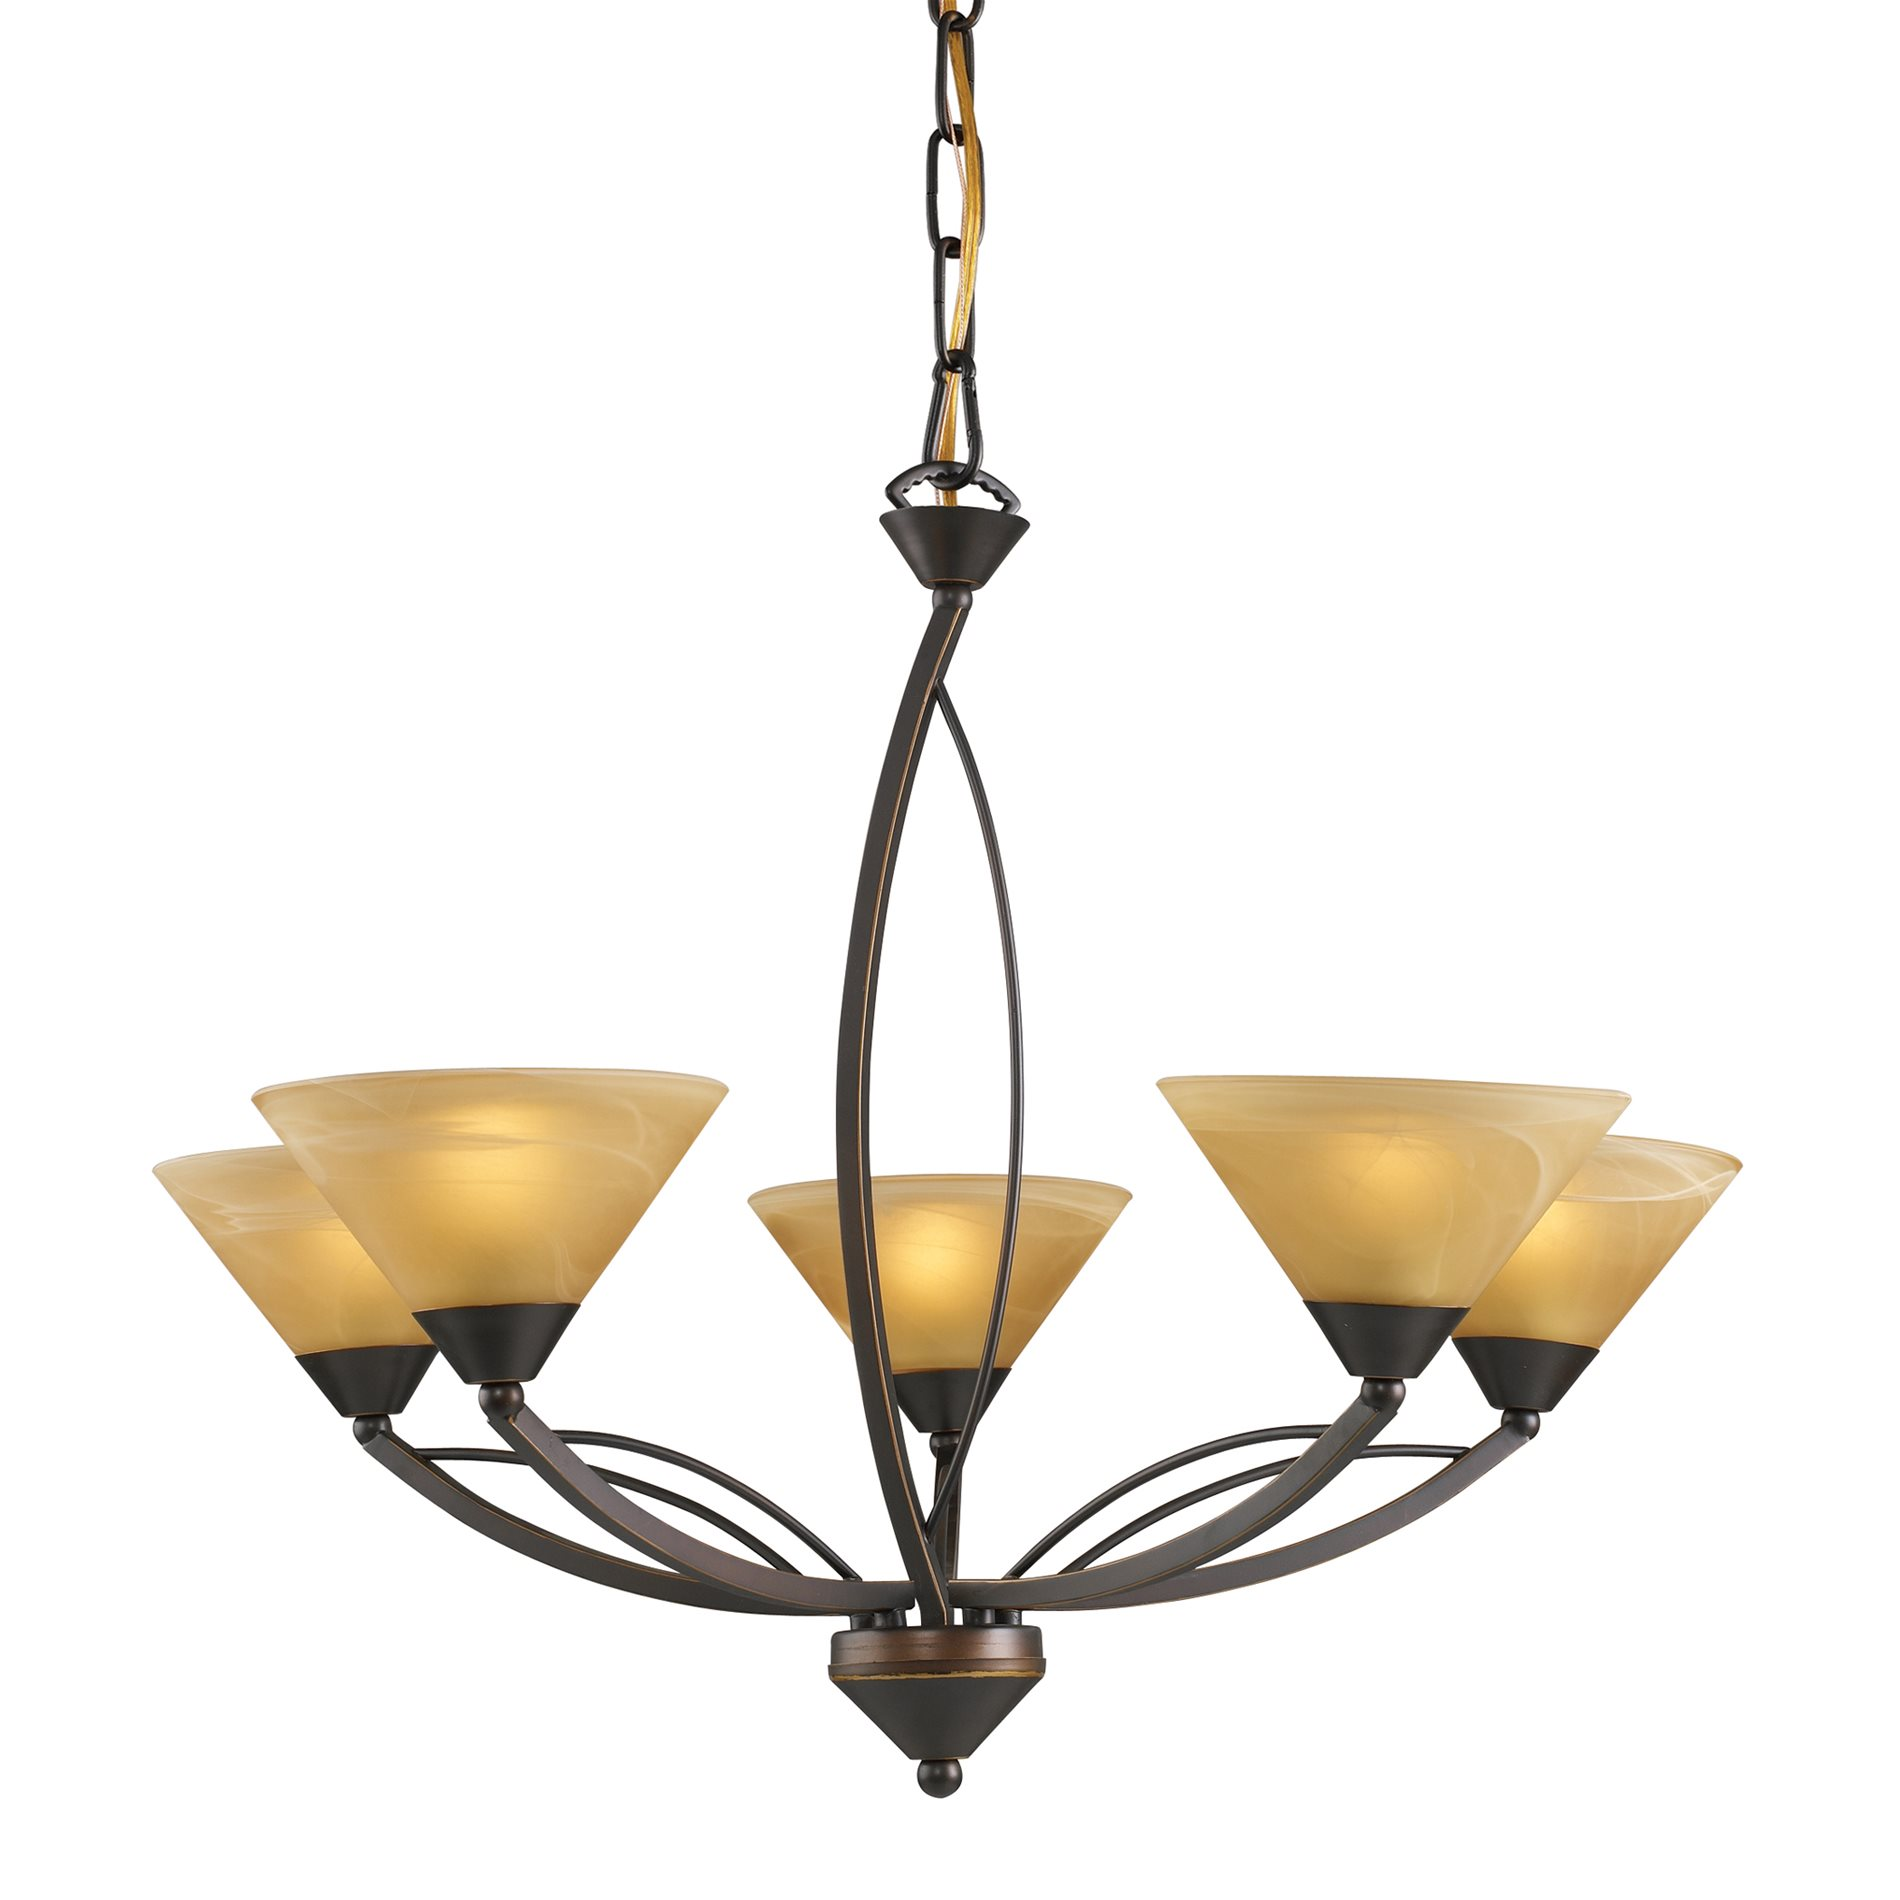 Elk Lighting Fans: Elk Lighting 7647/5 Elysburg Transitional Chandelier ELK